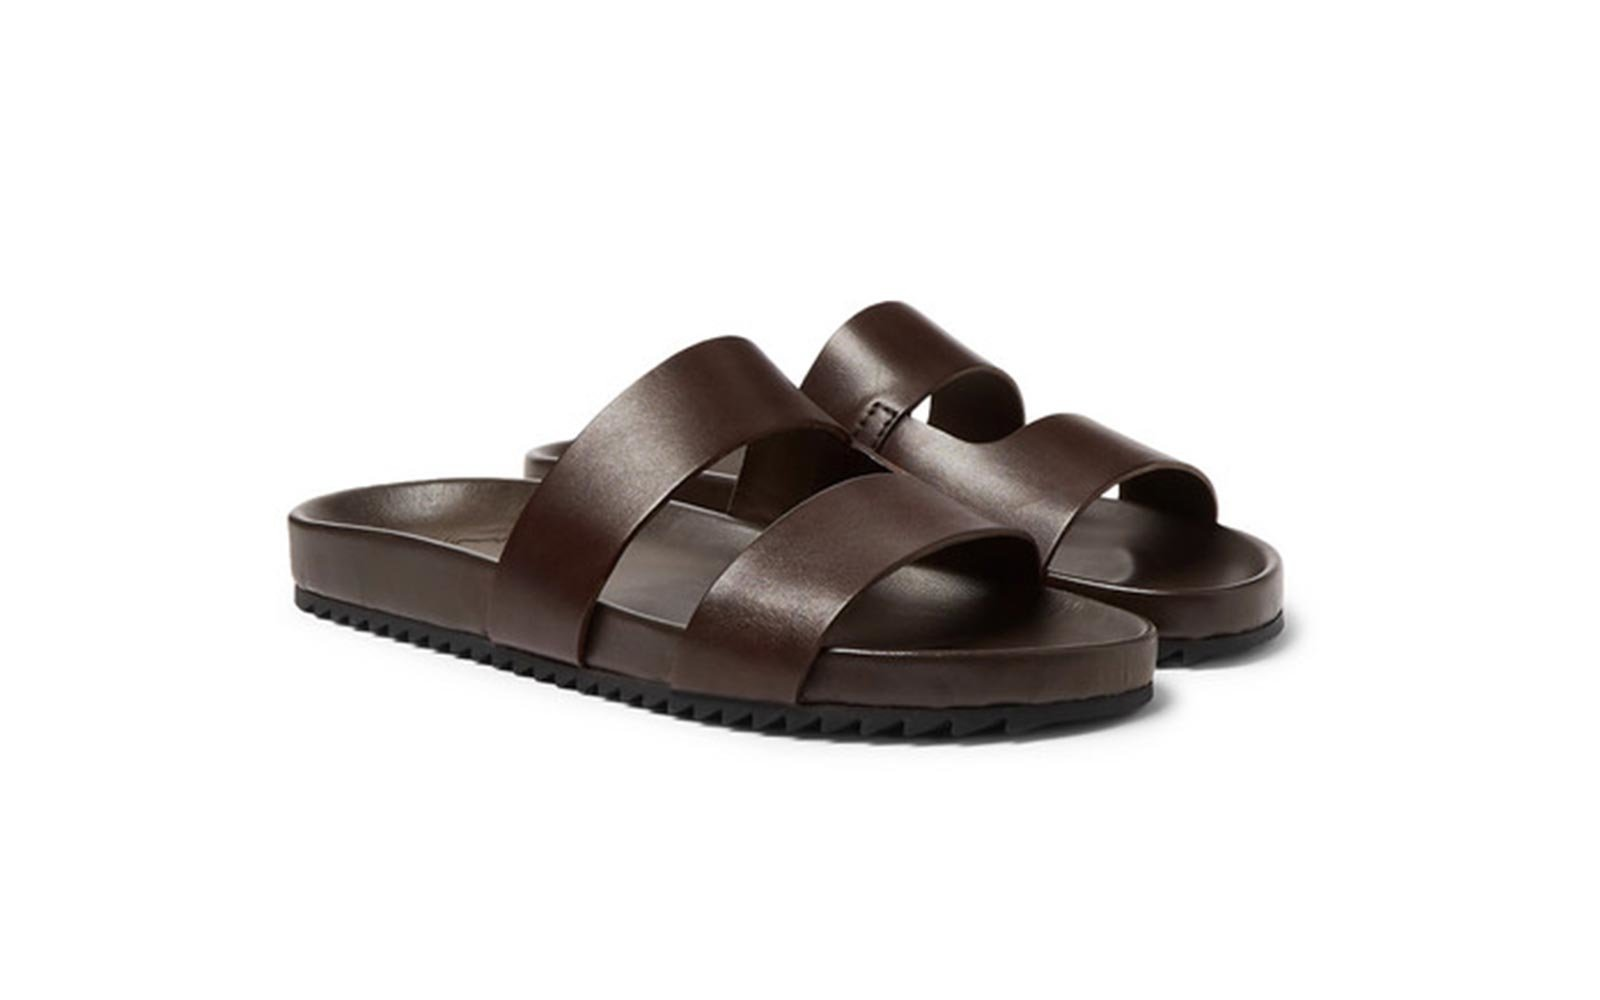 fa25ee84b3a The Best Men's Leather Sandals to Wear This Summer | Travel + Leisure